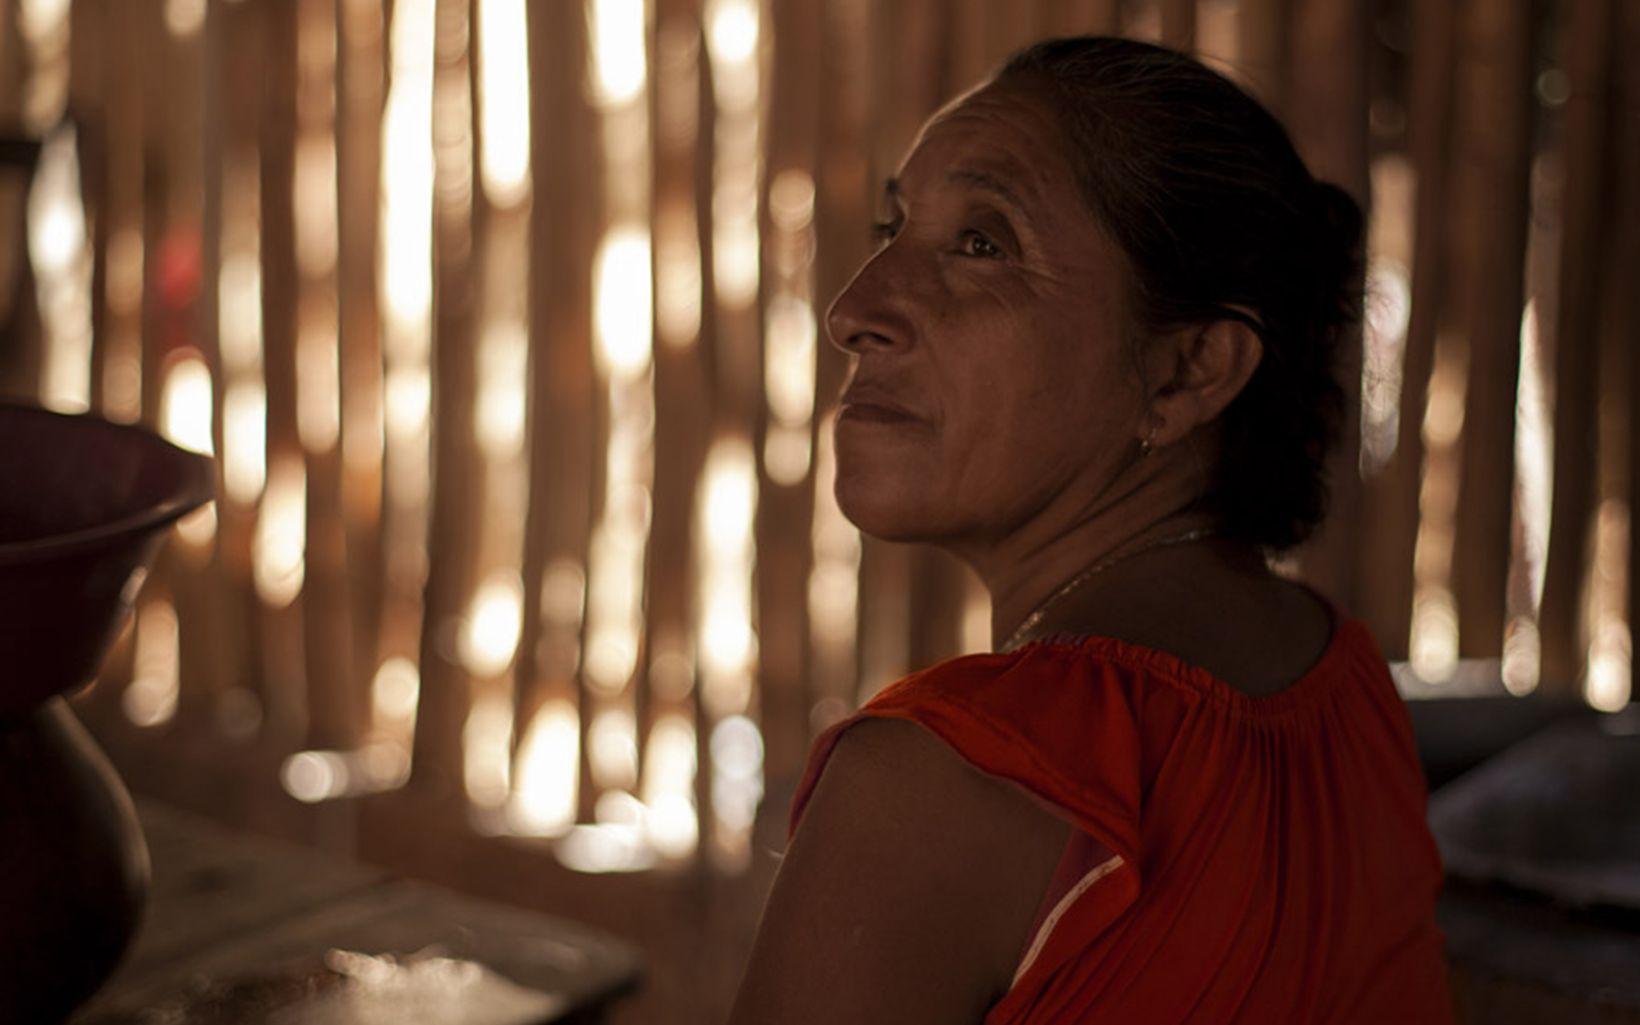 In the community of Liberato, Mexico, the incorporation of women is an opportunity to move forward on sustainable development and forestry conservation.